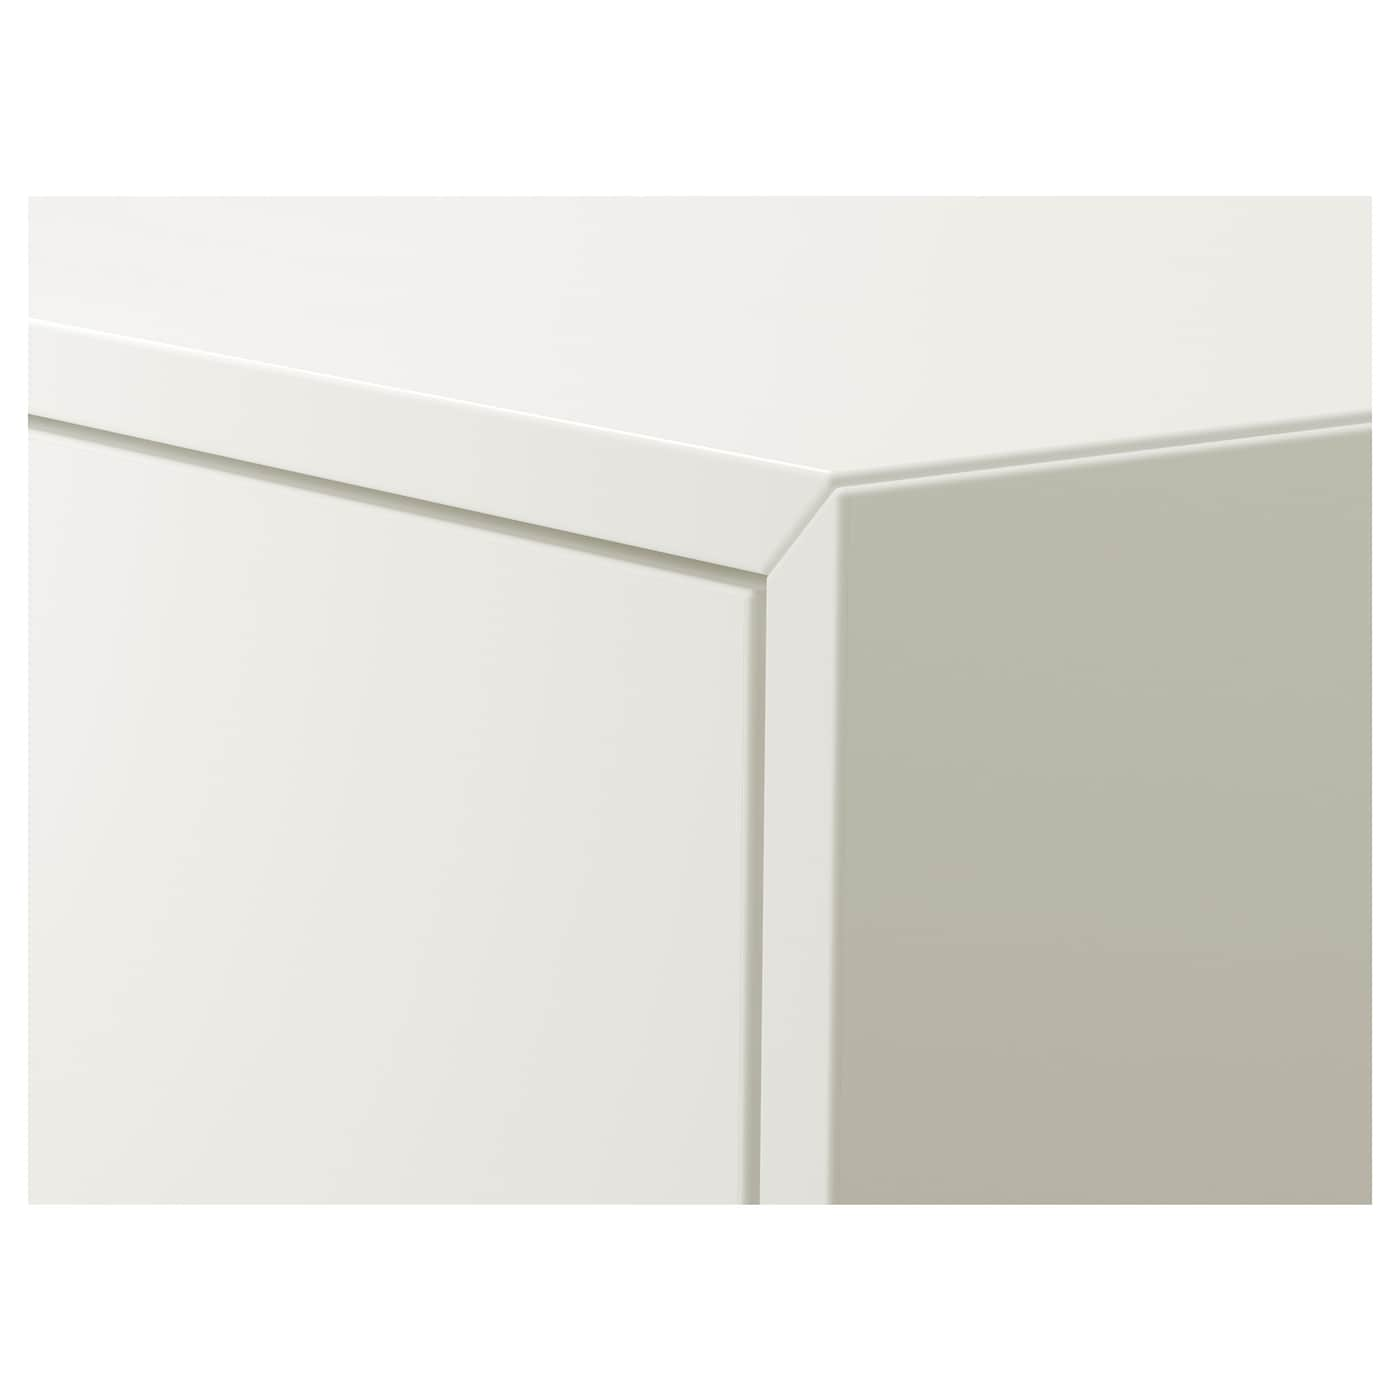 EKET Cabinet with 2 drawers, white, 70x35x35 cm